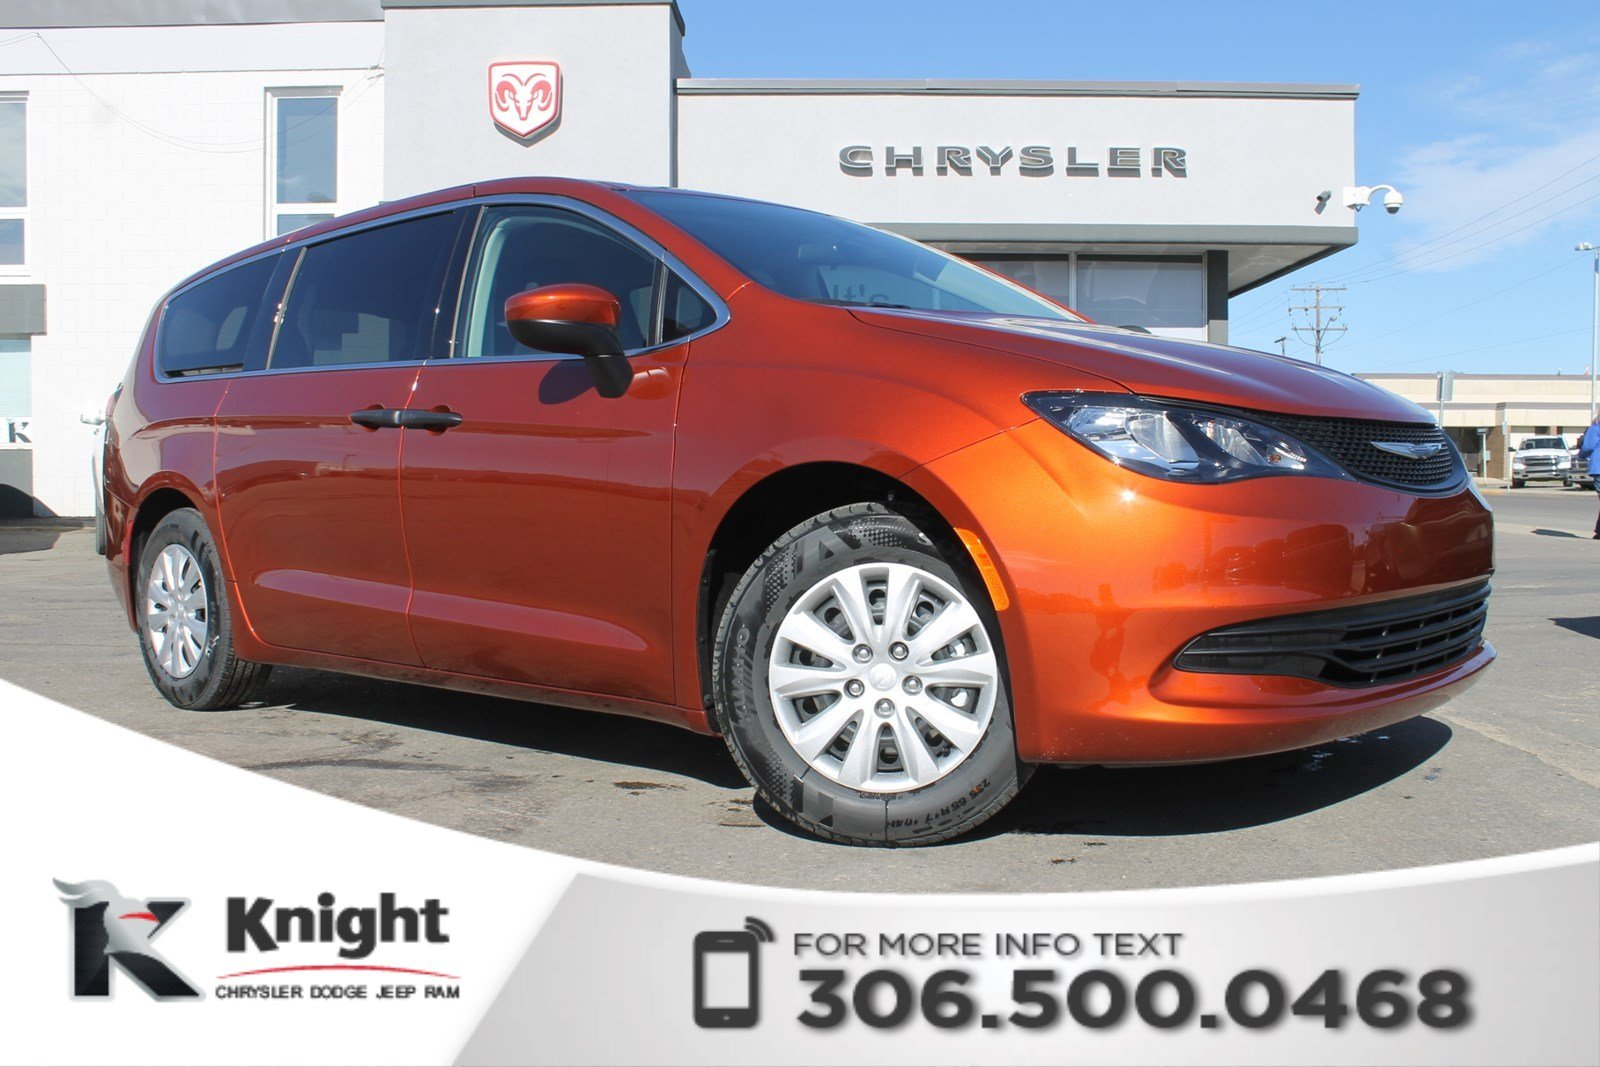 Knight Dodge Swift Current >> New 2018 Chrysler Pacifica L Mini-van, Passenger in Swift Current #10490 | Knight Automotive Group